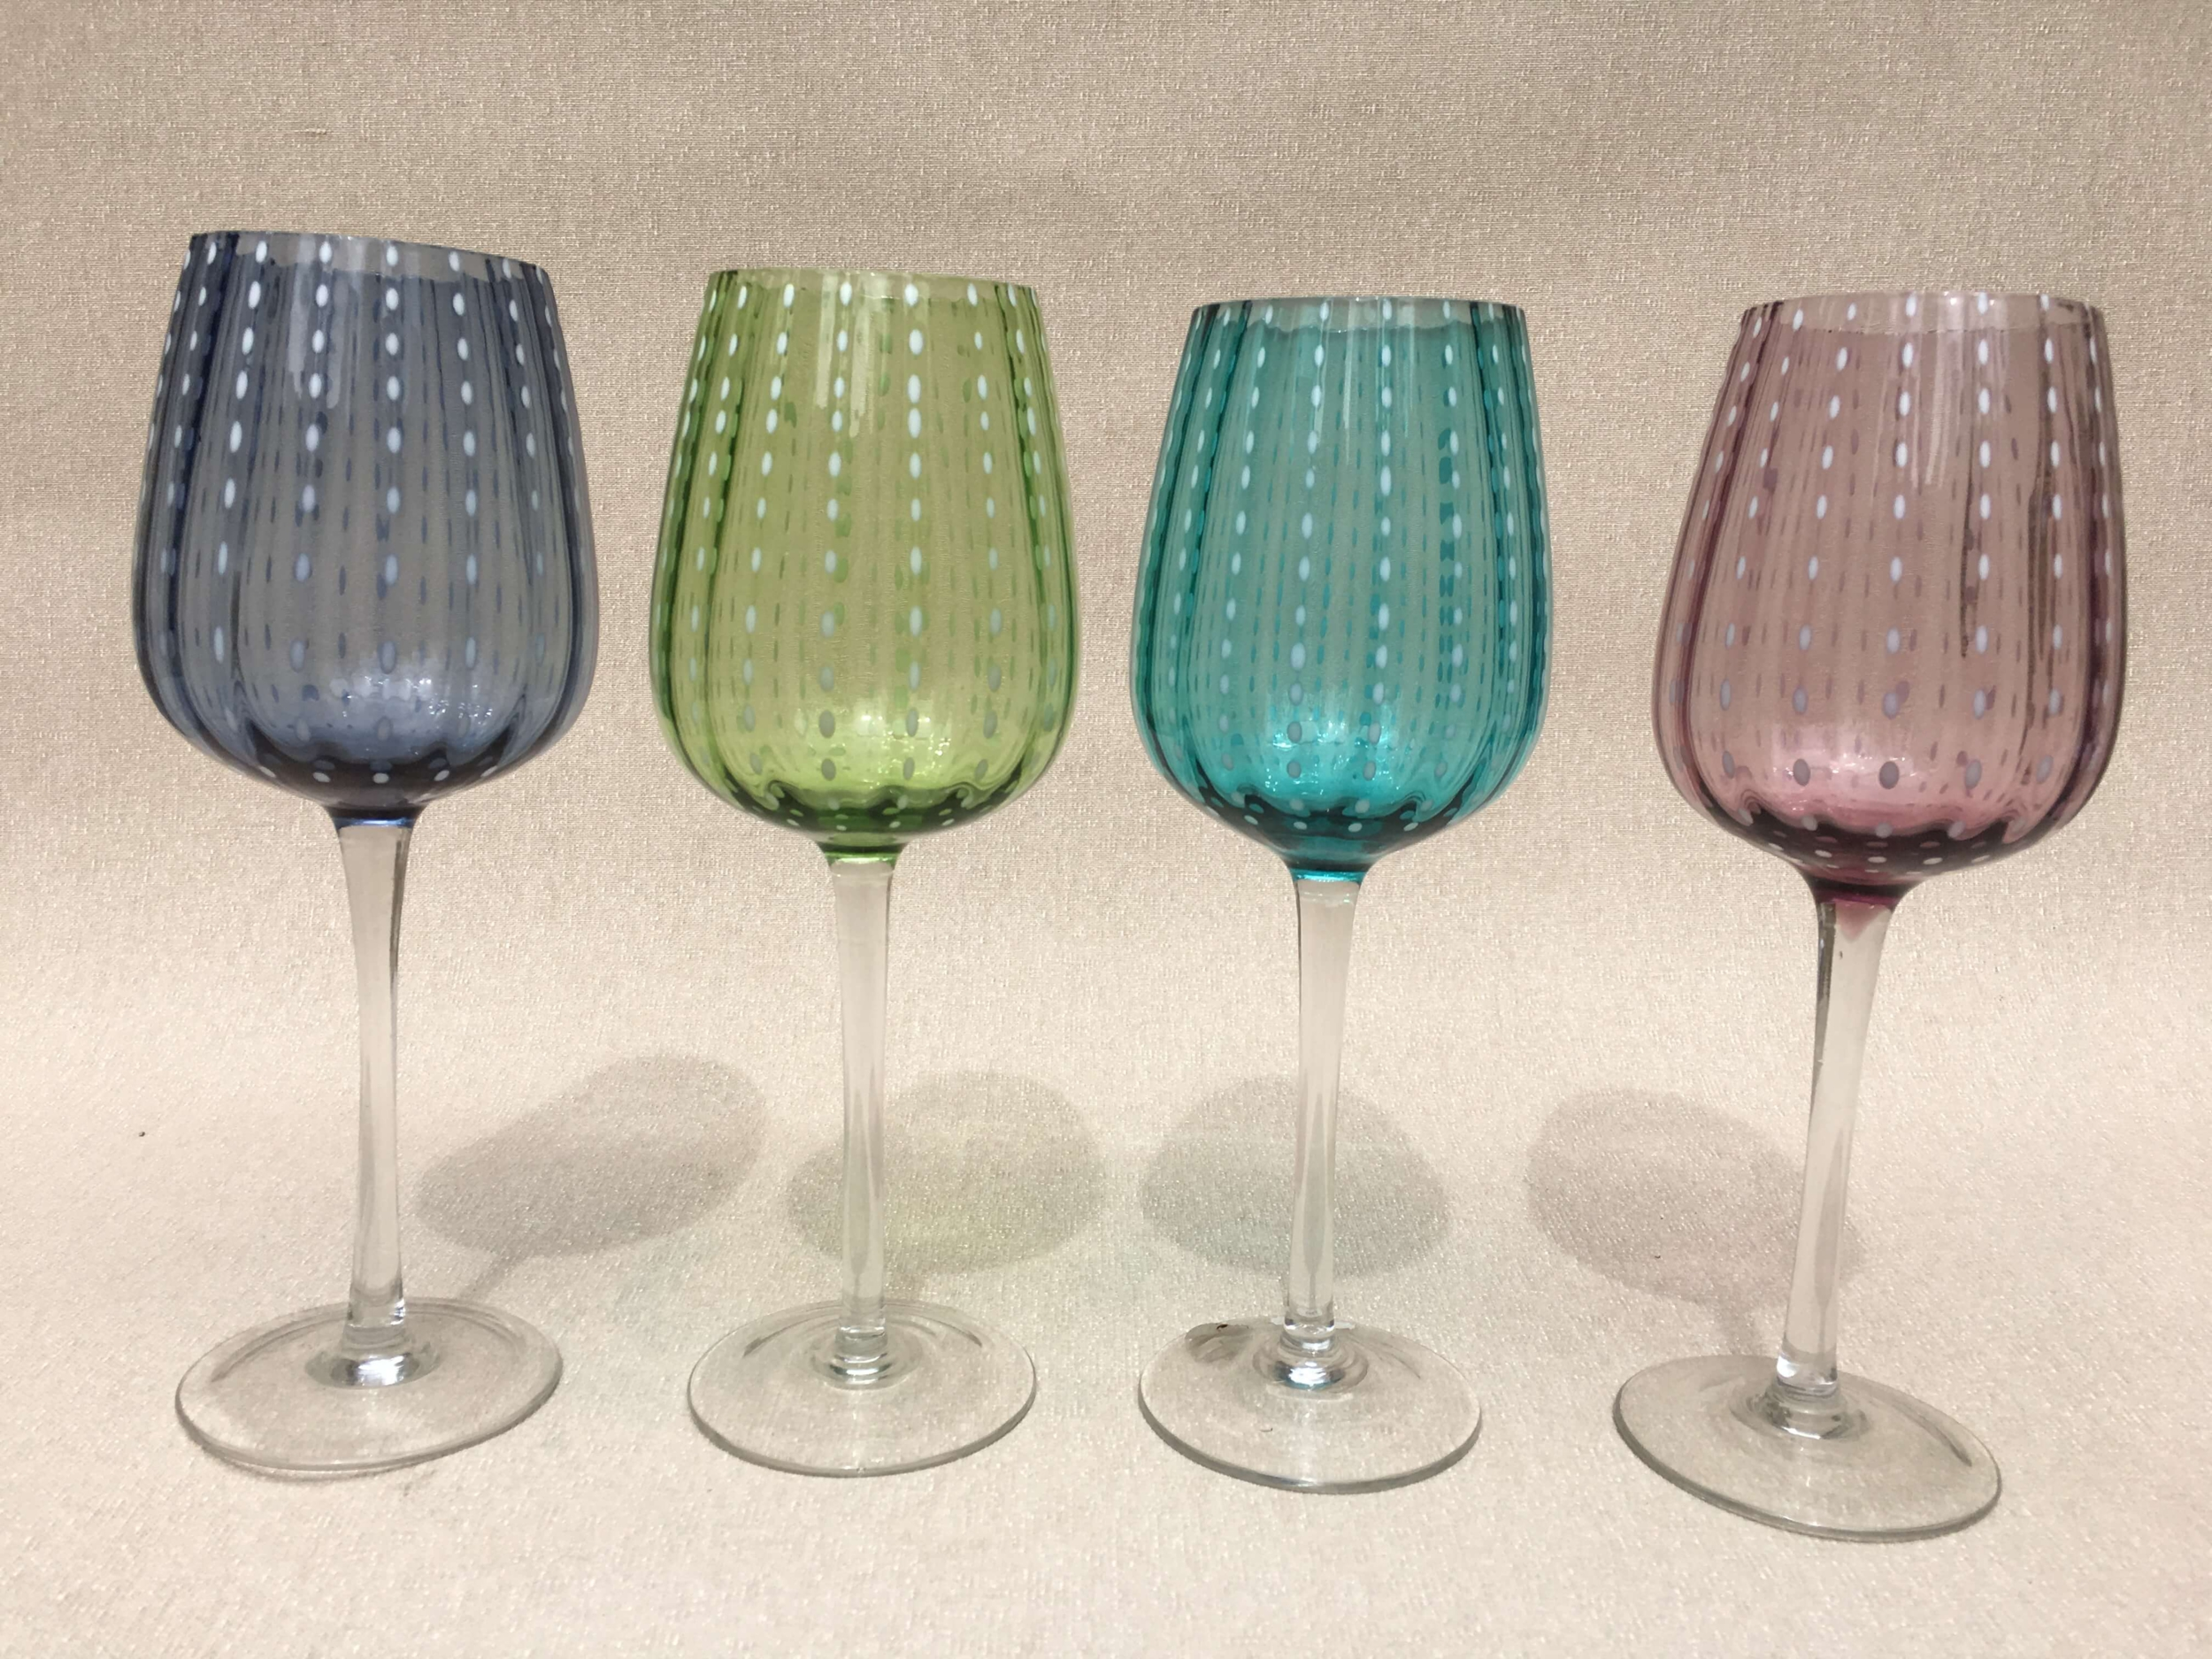 4 Verres Bouquets New York